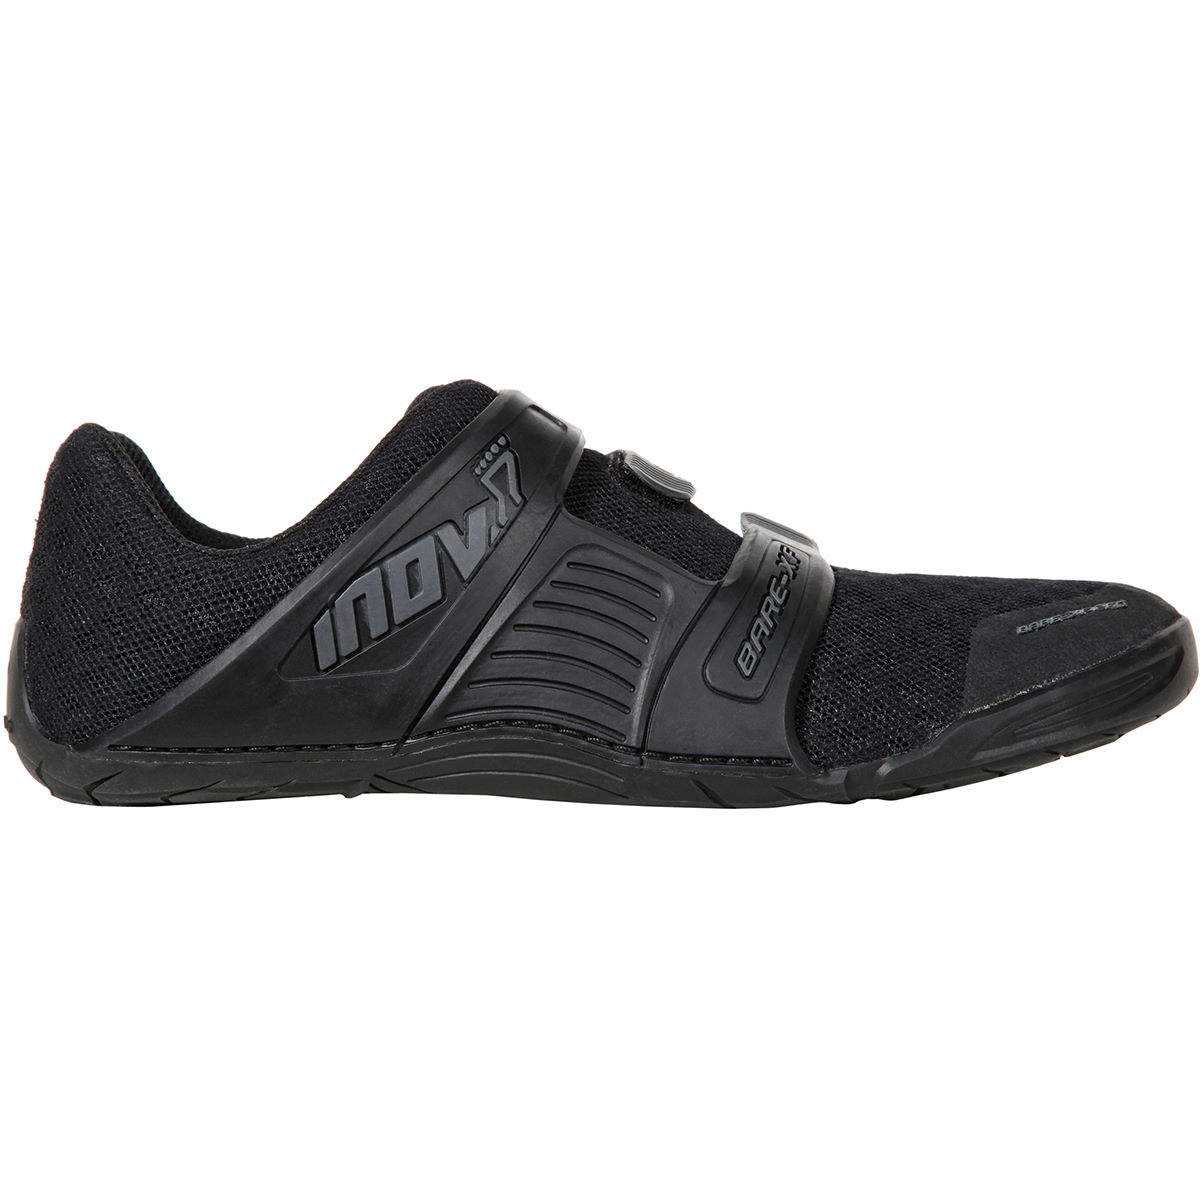 Inov Lifting Uk Shoe